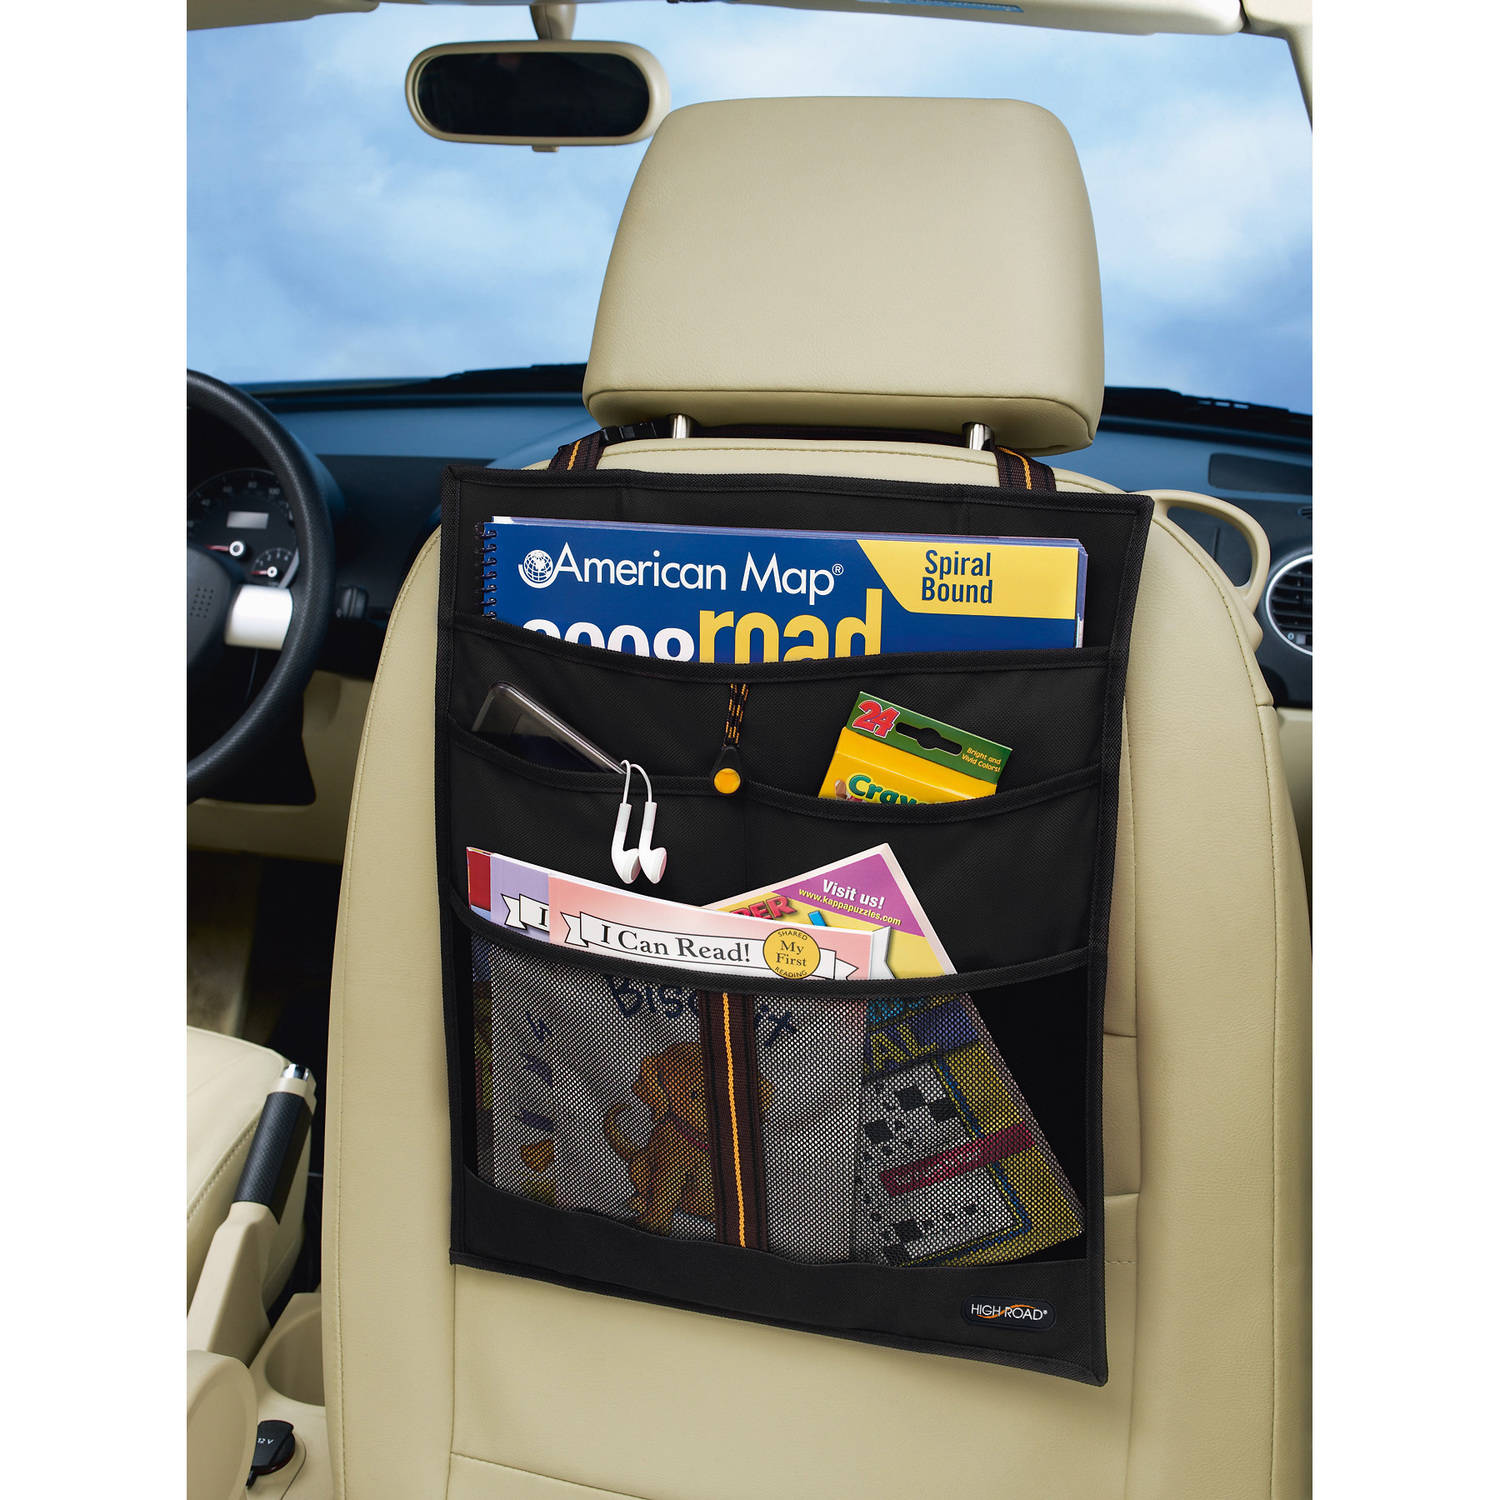 High Road Express Car Seat Back Organizer